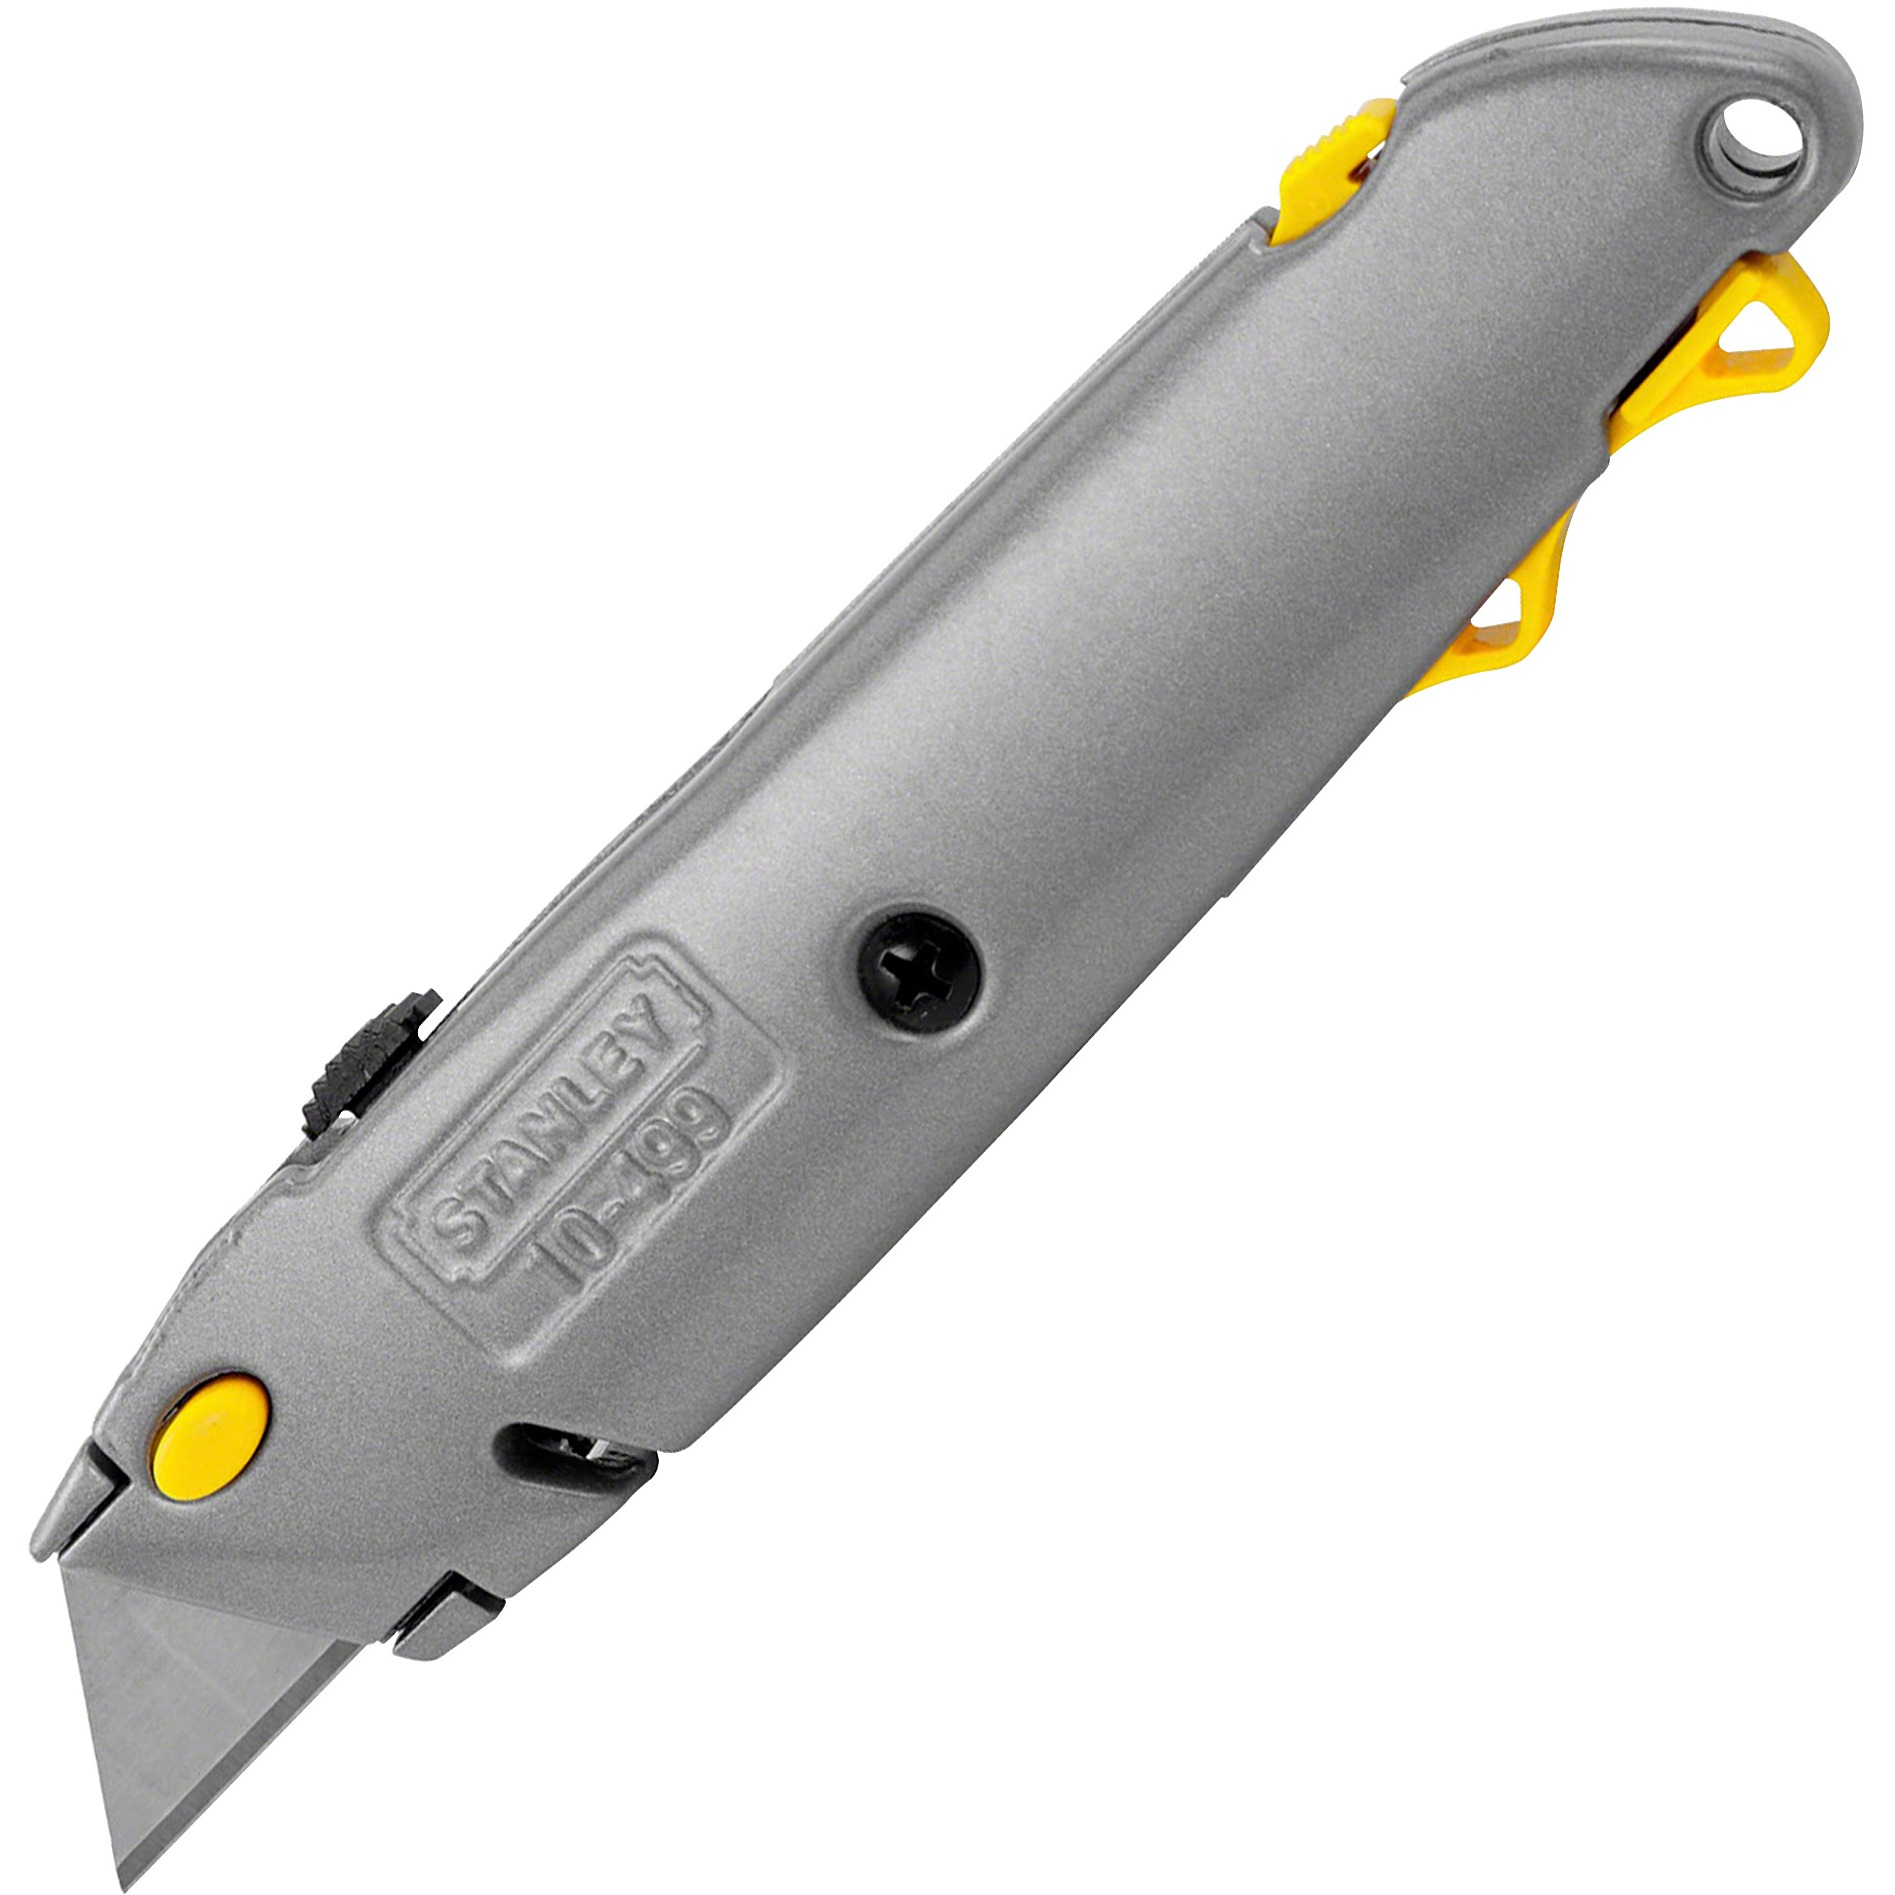 STANLEY 10-499W Quick-Change Retractable Utility Knife